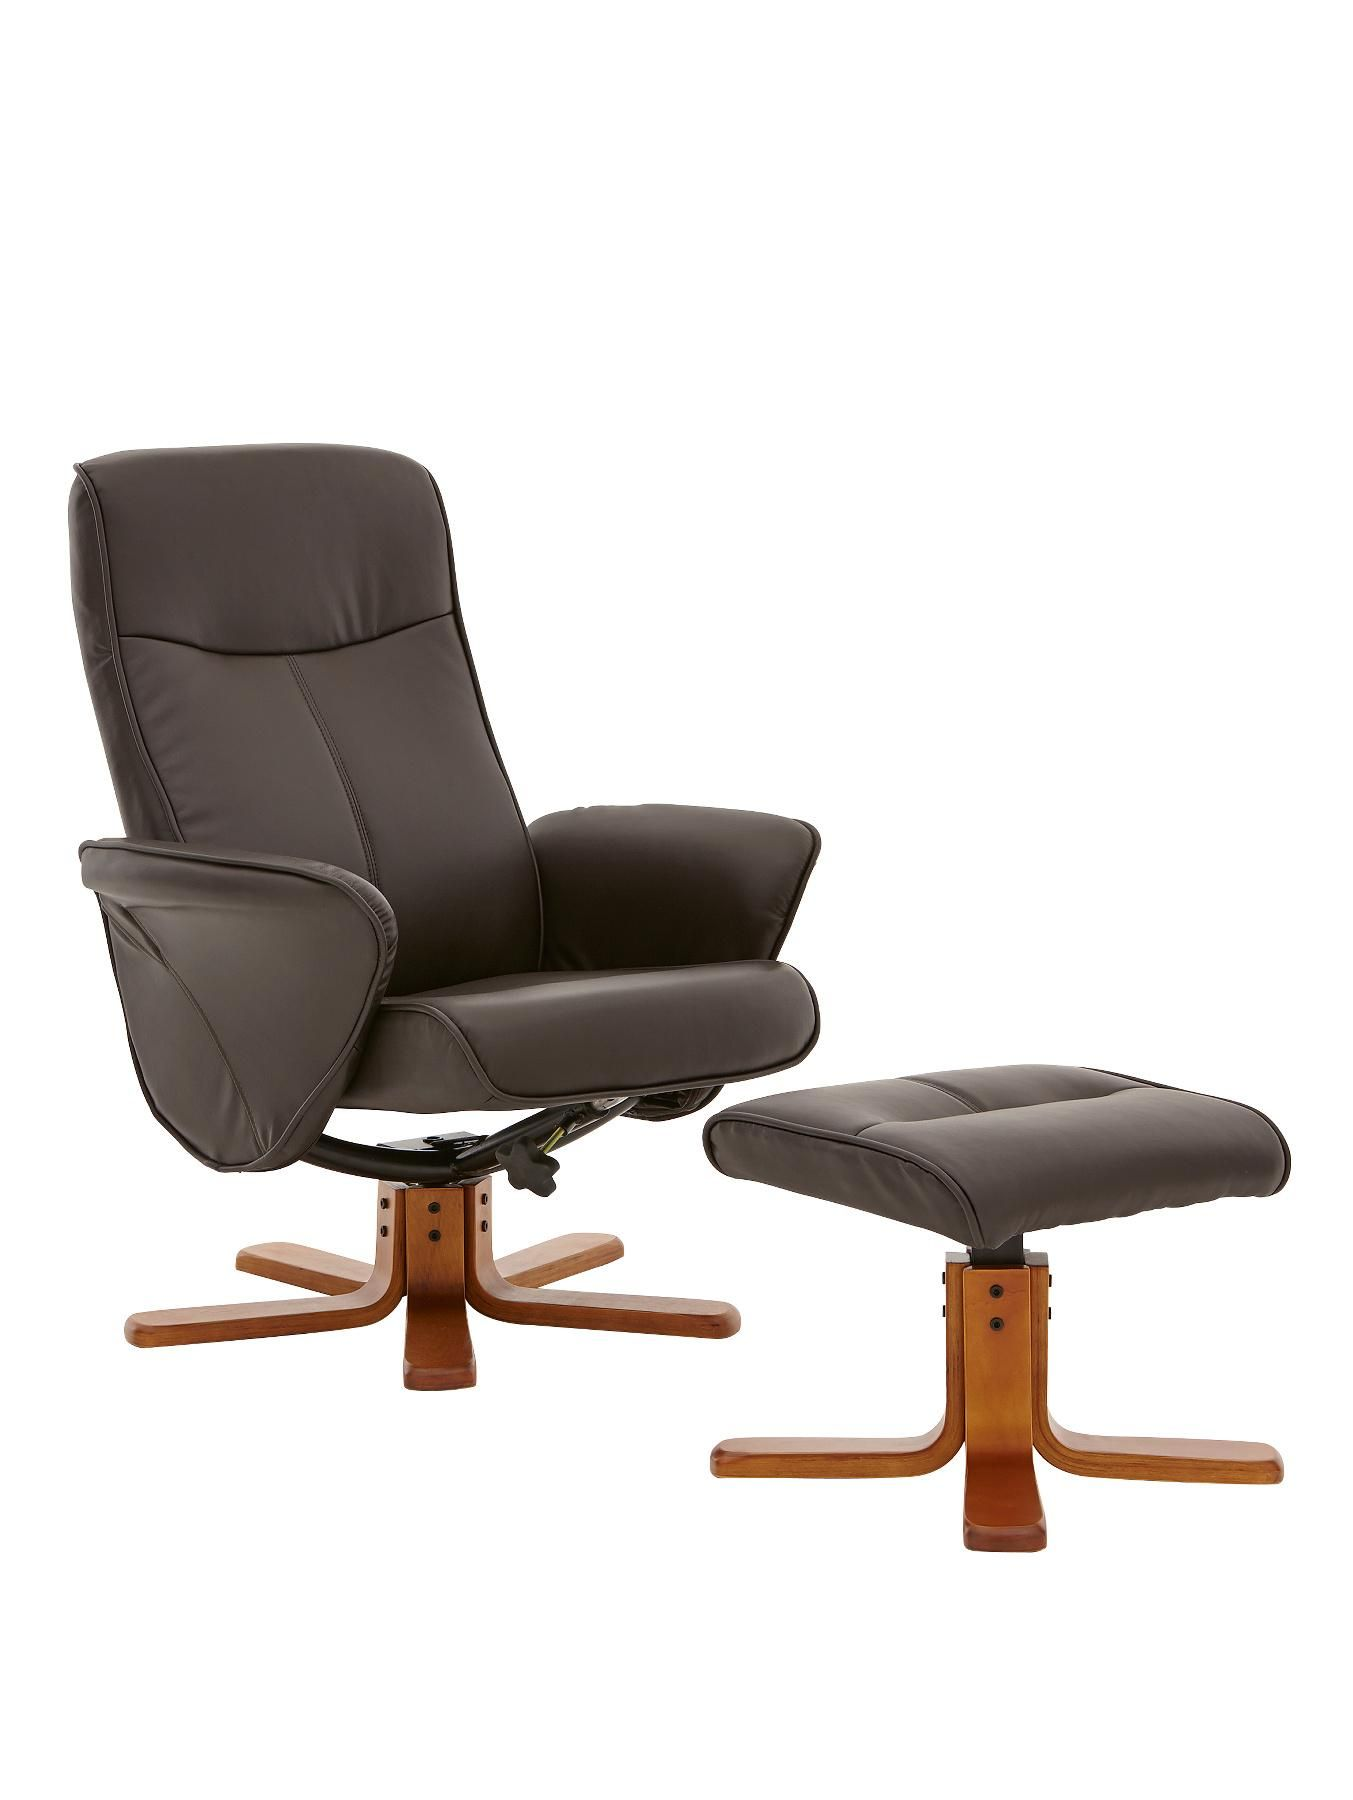 Sensational Dexter Swivel Recliner Chair And Footstool Very Co Uk Ocoug Best Dining Table And Chair Ideas Images Ocougorg